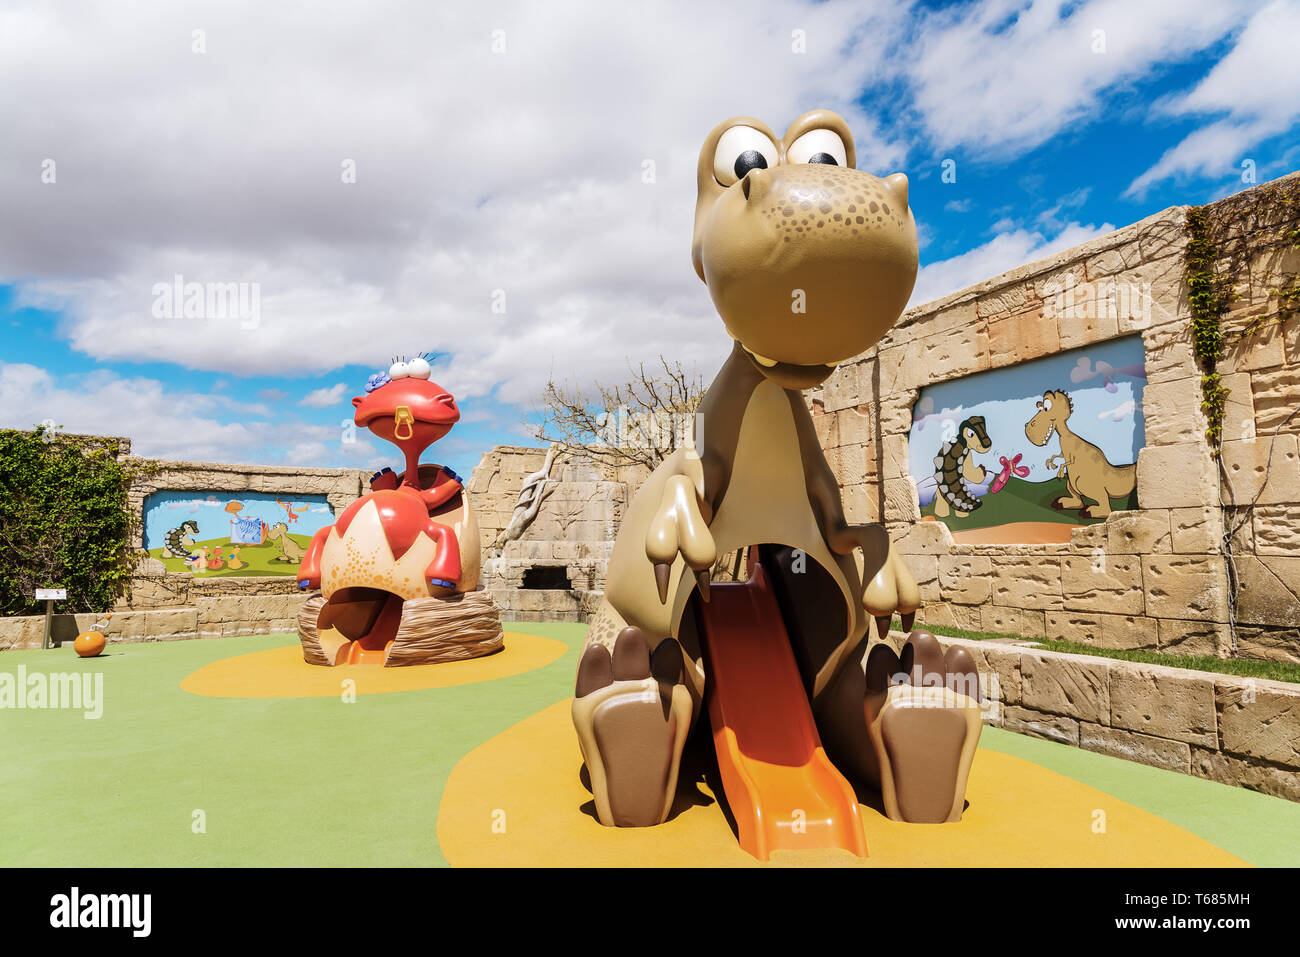 Children's playground with slides in the shape of cute dinosaurs. - Stock Image